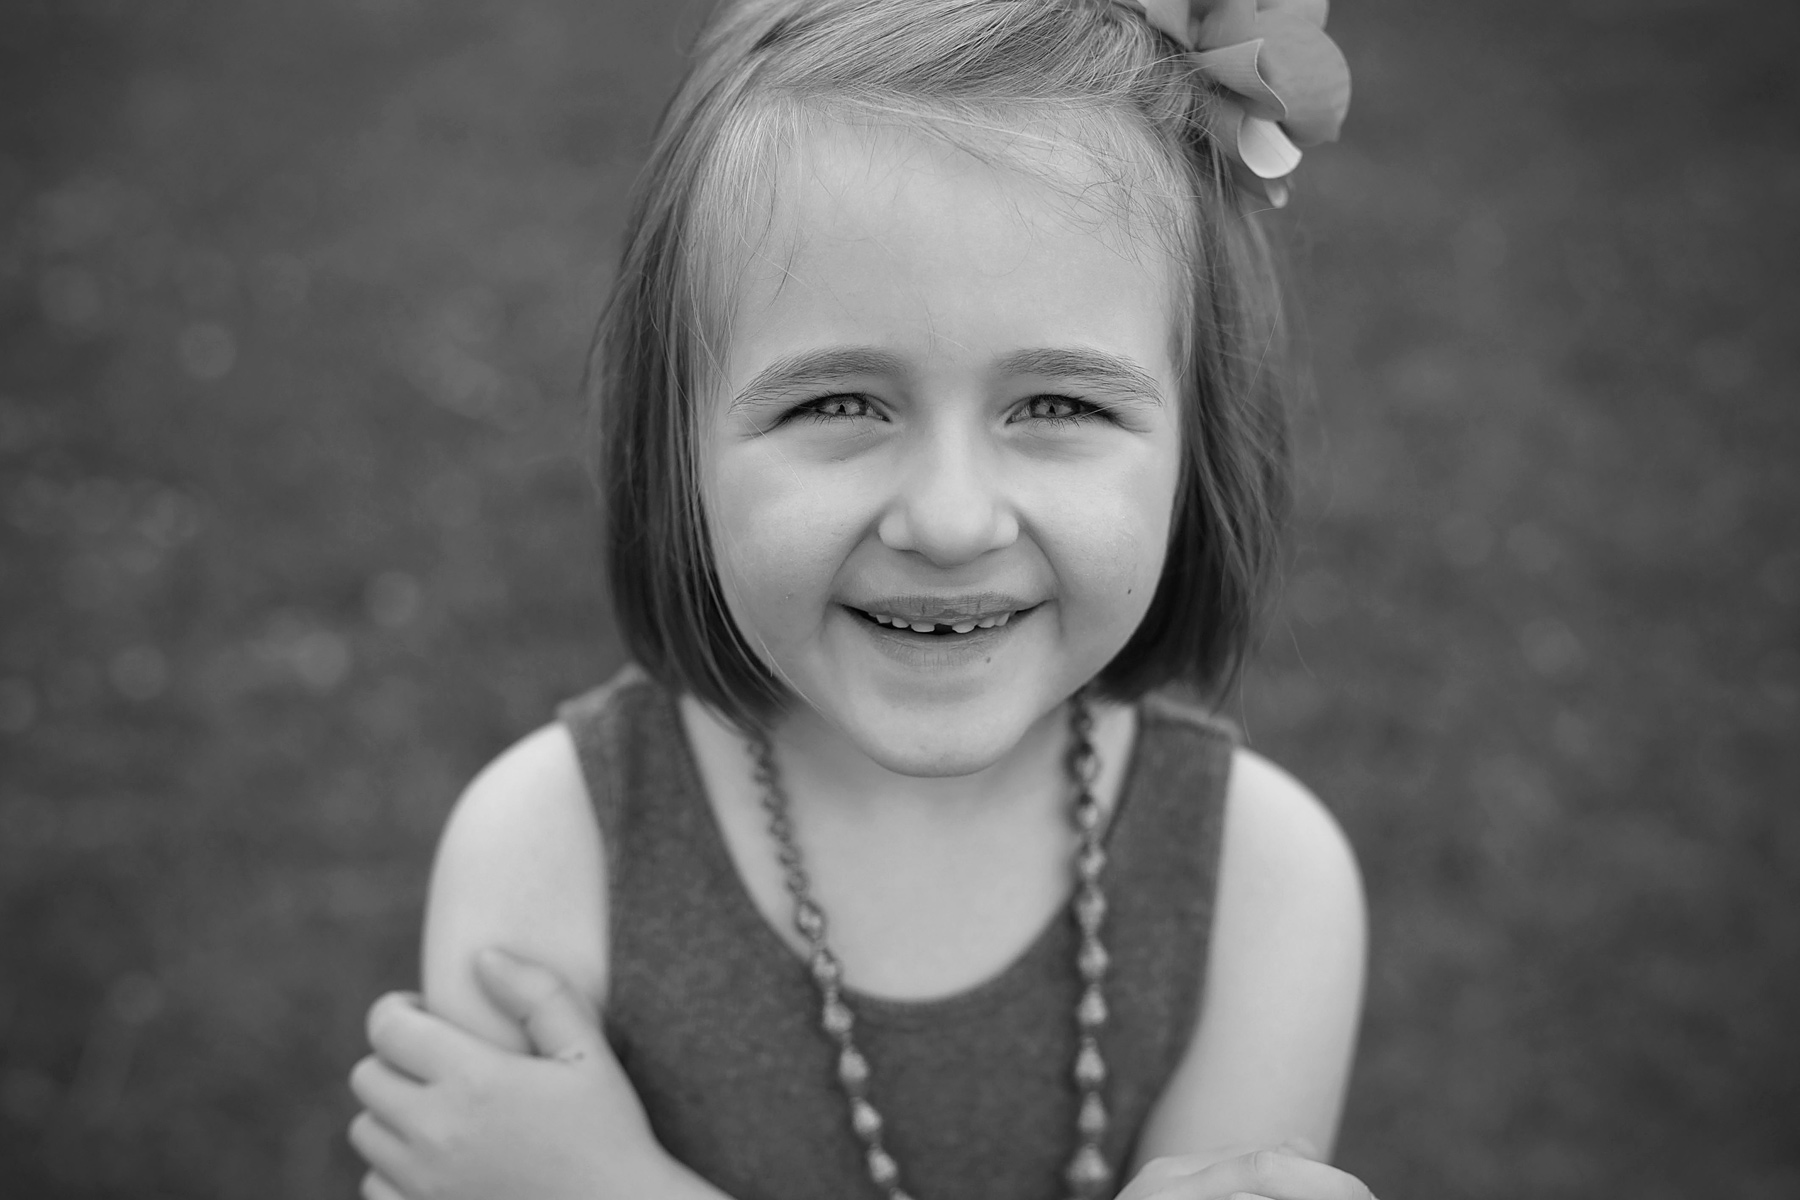 black and white of young girl smiling with arms crossed